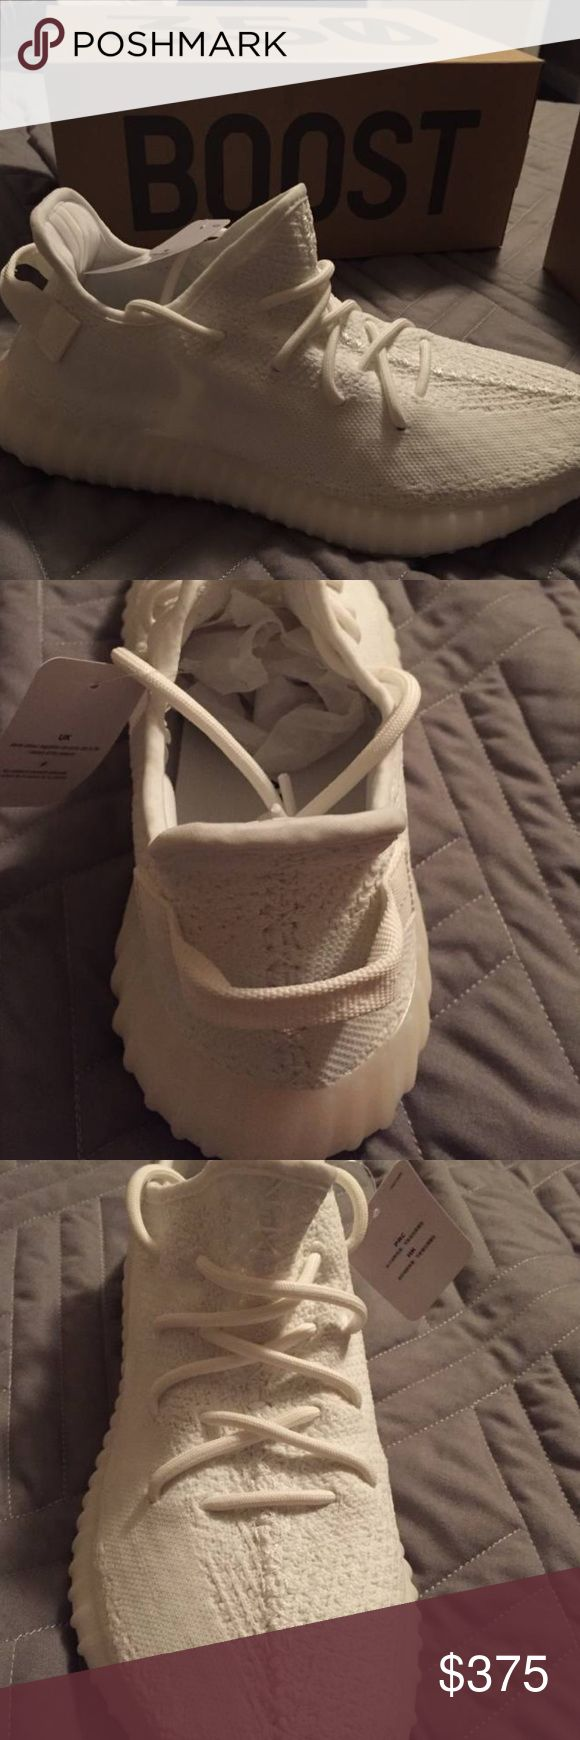 YEEZY BOOST 350 v2 CREAM Hello, I have a pair of brand new  worn twice yeezy boost 350 v2 in the cream colorway still in box only taken out for the pictures. This is a hobby of mine I buy and sell shoes so this is the perfect opportunity to get these shoes at a good price! I'm asking $375 obo adidas Shoes Sneakers